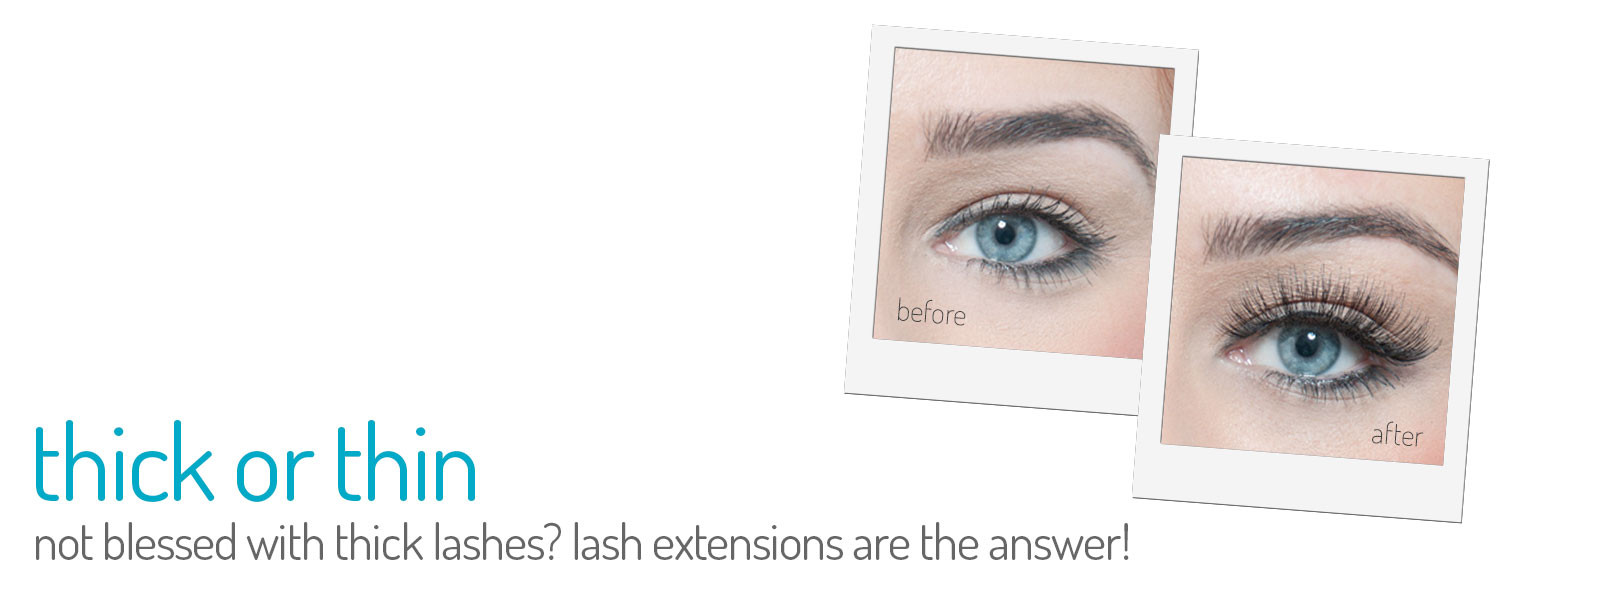 revita lash, brows, lashes, waxing, skincare, airbrush tanning, makeup, xtreme lash